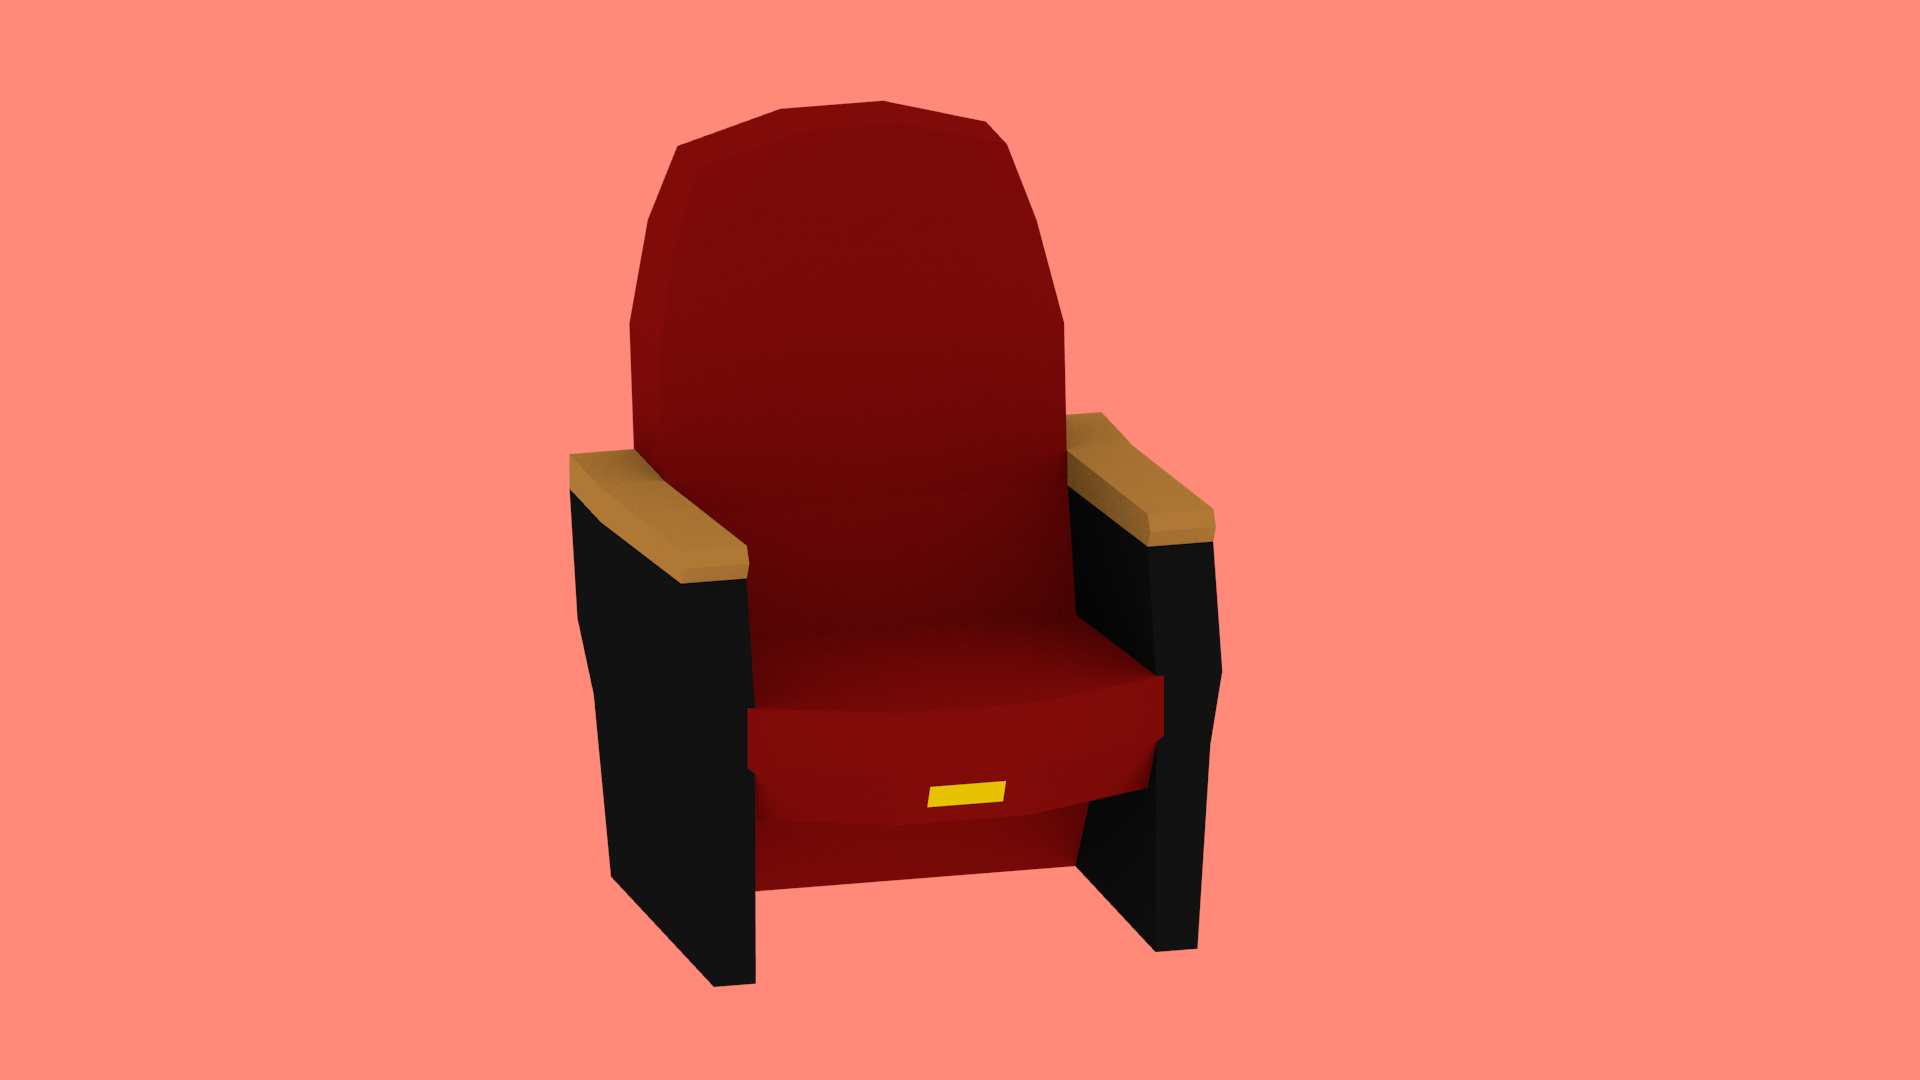 Render of the theater chair